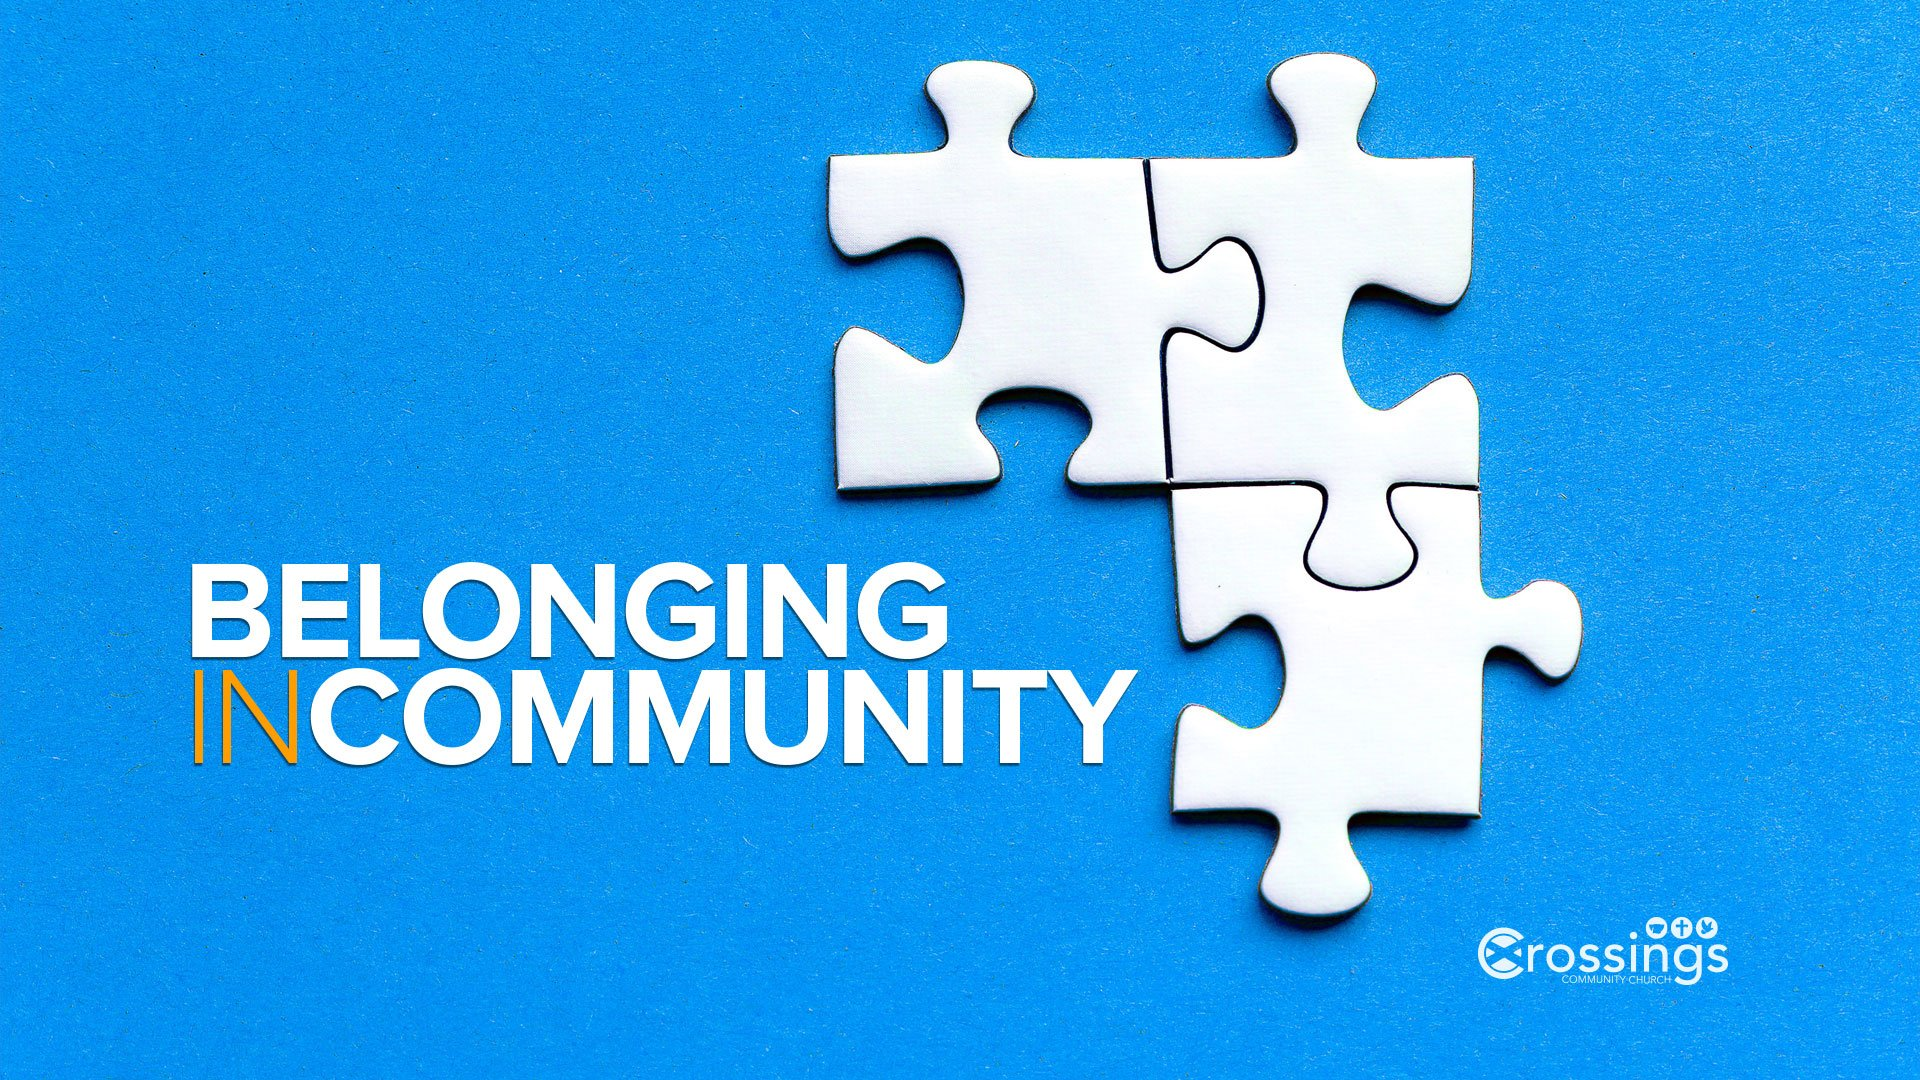 belonging in community